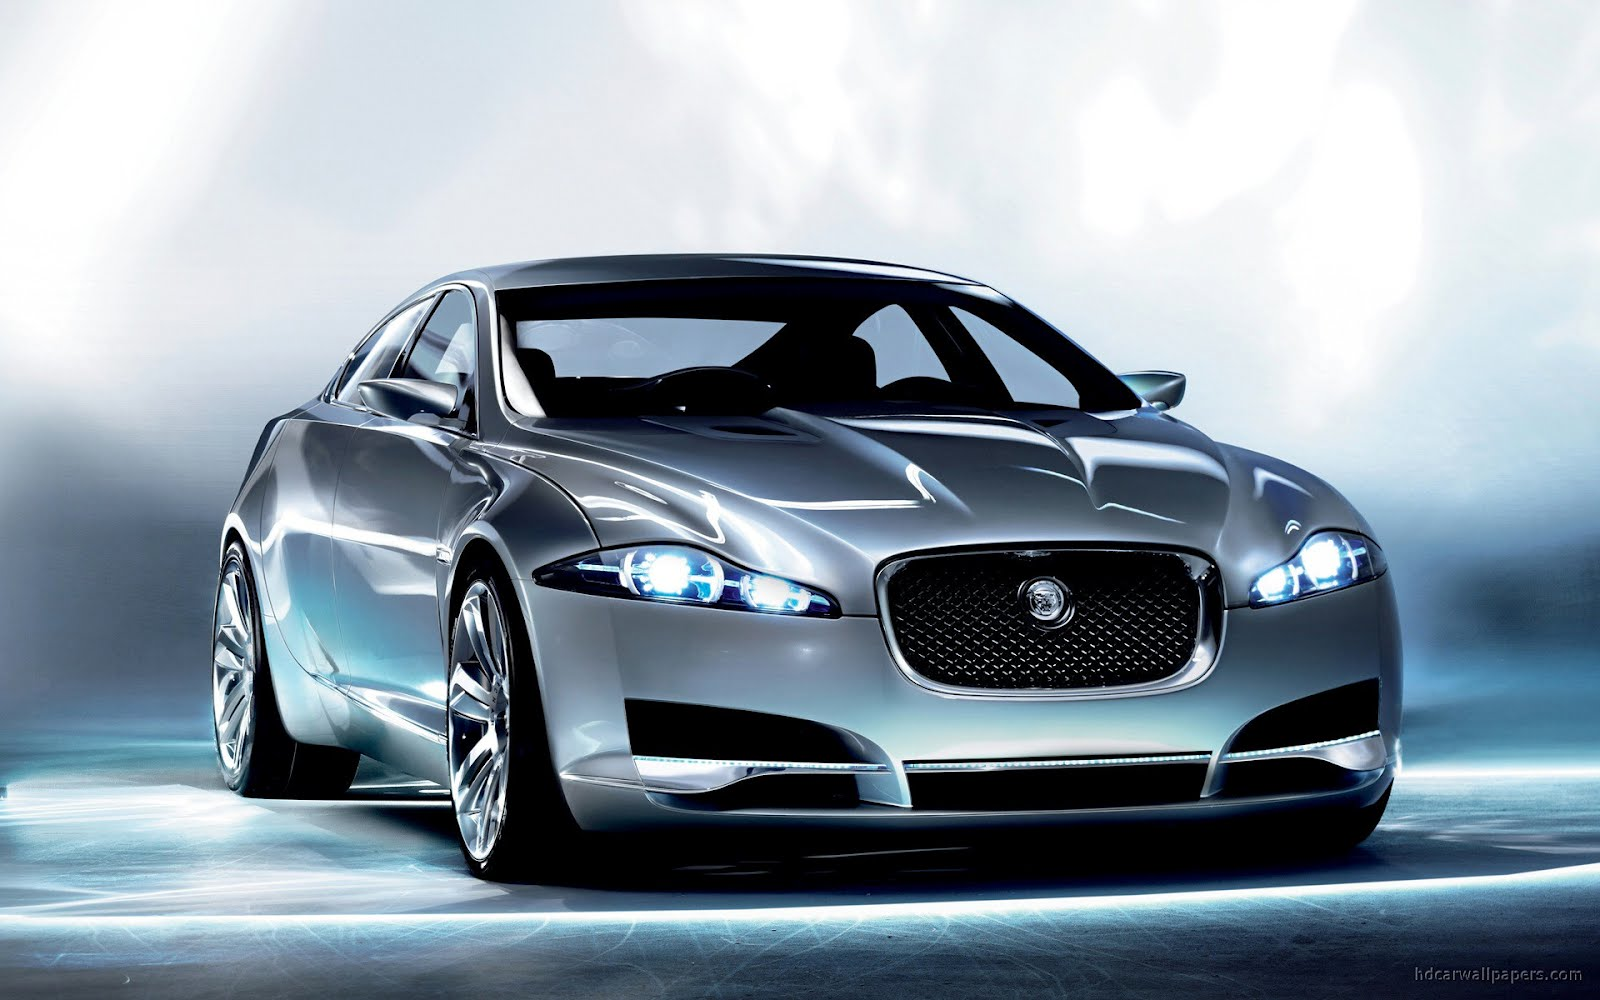 Jaguar Cars Images Hd: HD WALLPAPER